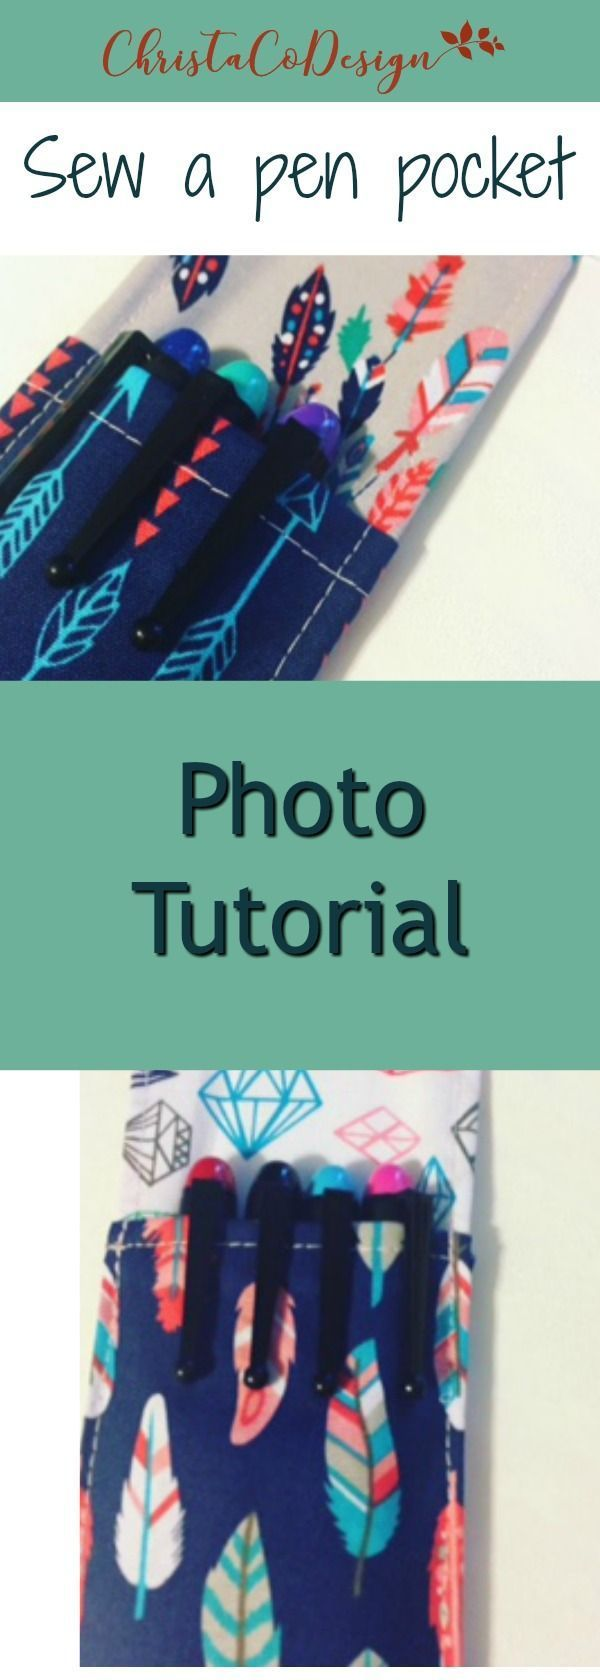 Sew a pen pocket for your notebook | great teacher gift